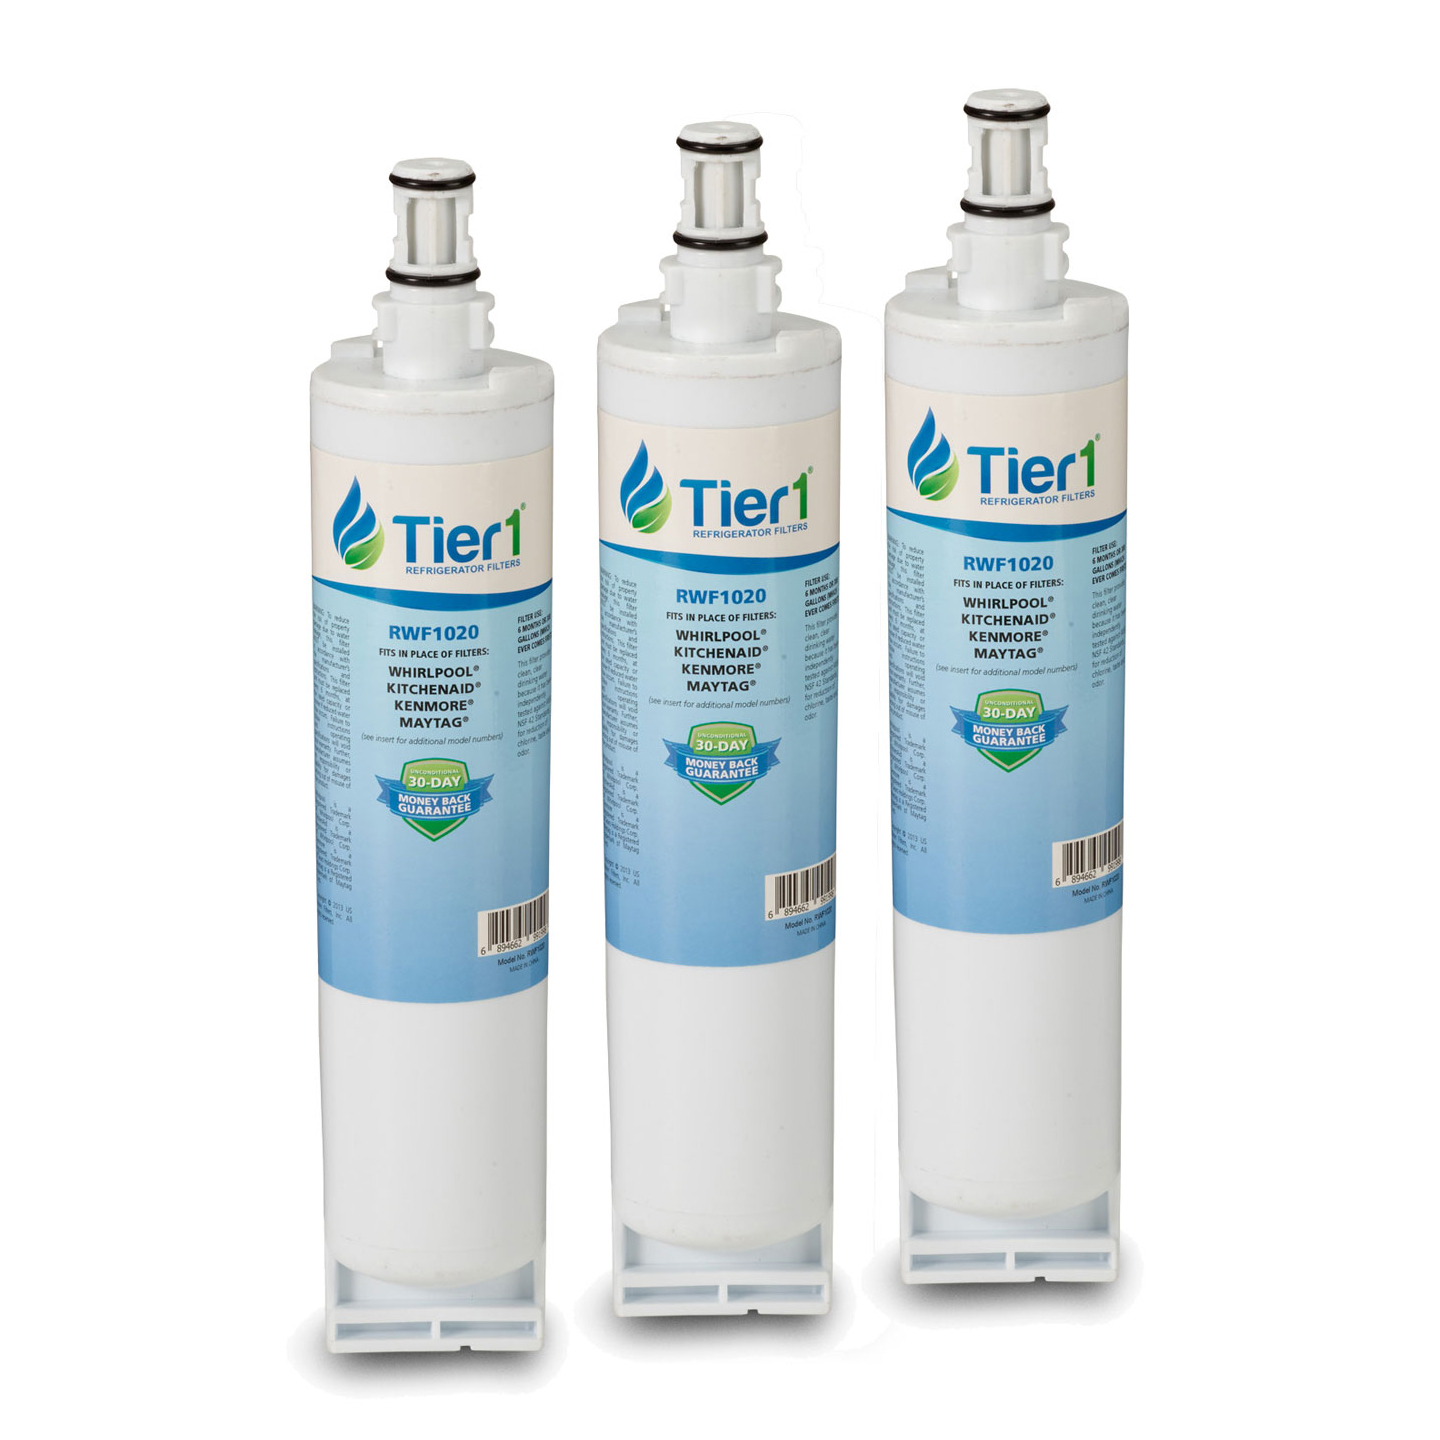 4396508 / 4396510 Whirlpool Comparable Refrigerator Water Filter Replacement By Tier1 (3 Pack) TIER1_RWF1020_3_PACK